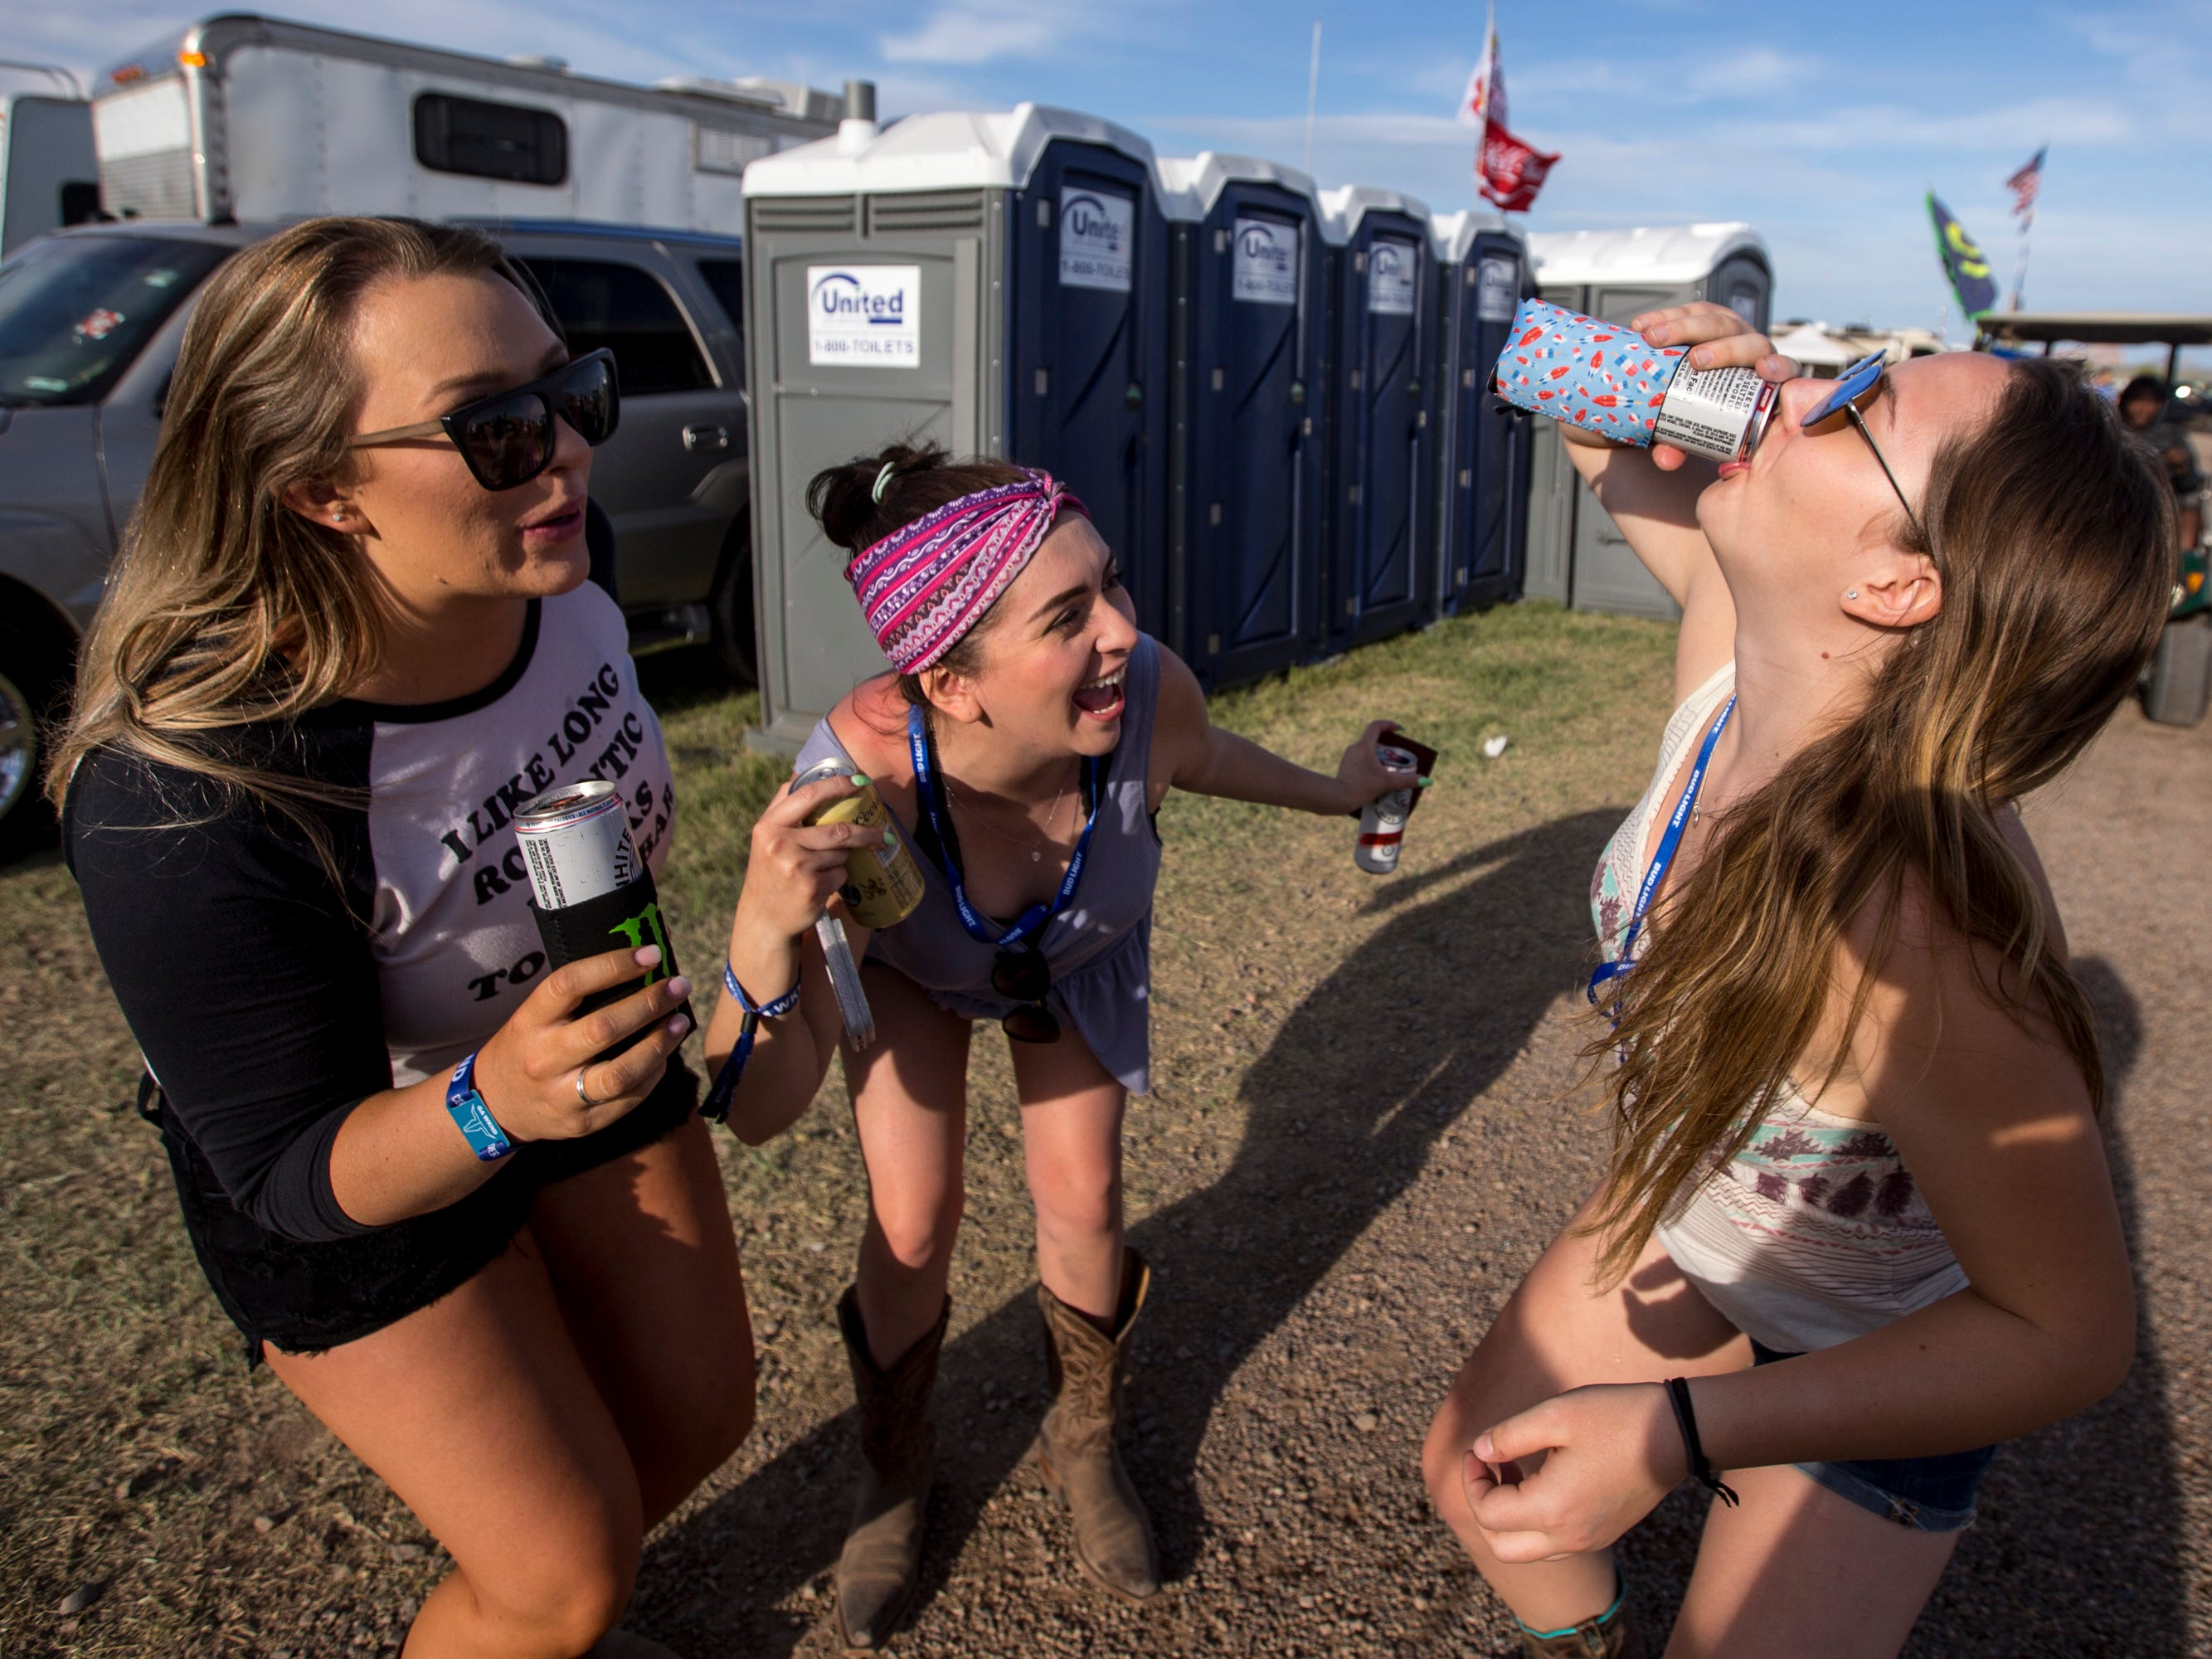 (from left to right) Dakota Starlin and Miriam Yepiz watch Mary Jacobs drink a spiked seltzer at the Crazy Coyote campsite during Day 1 of Country Thunder Arizona in Florence, Ariz., on Apr. 11, 2019.